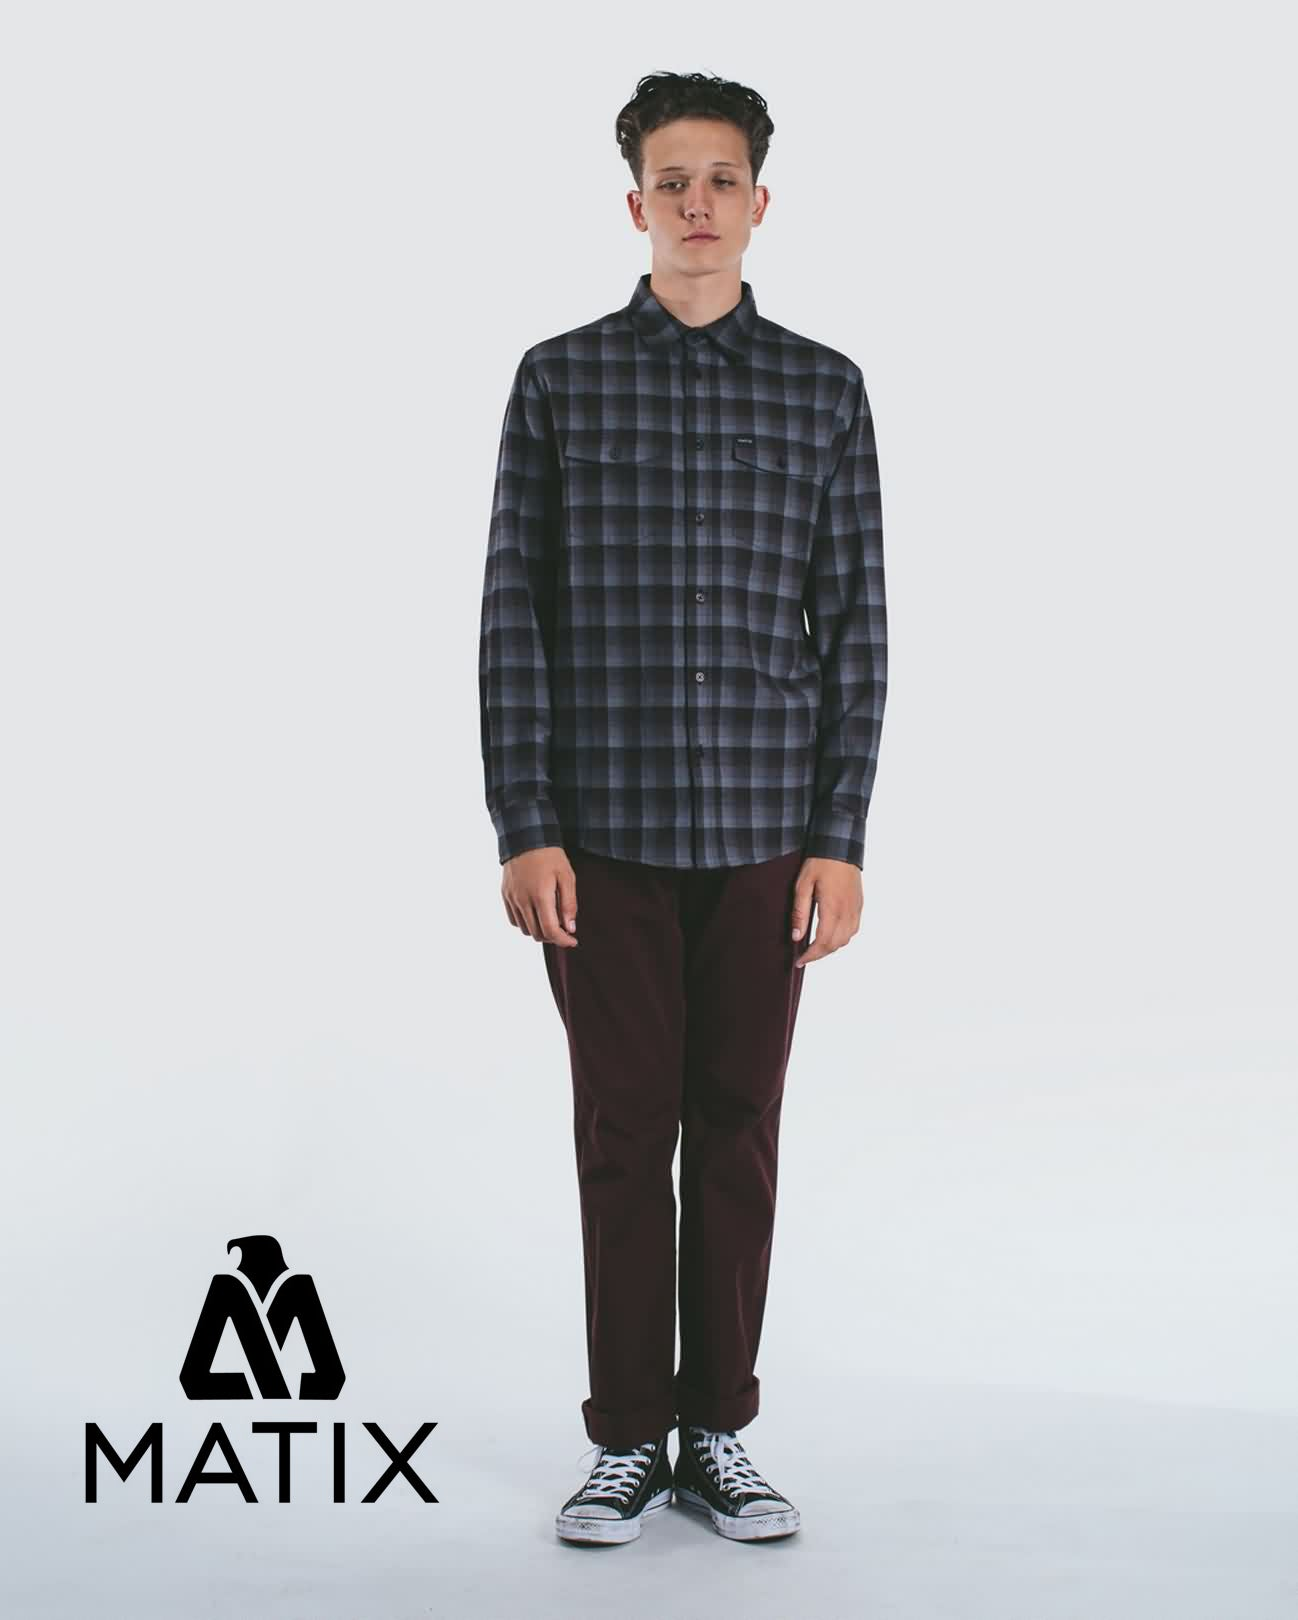 Matix Fall 2016 Mens Lifestyle Apparel Clothing Collection